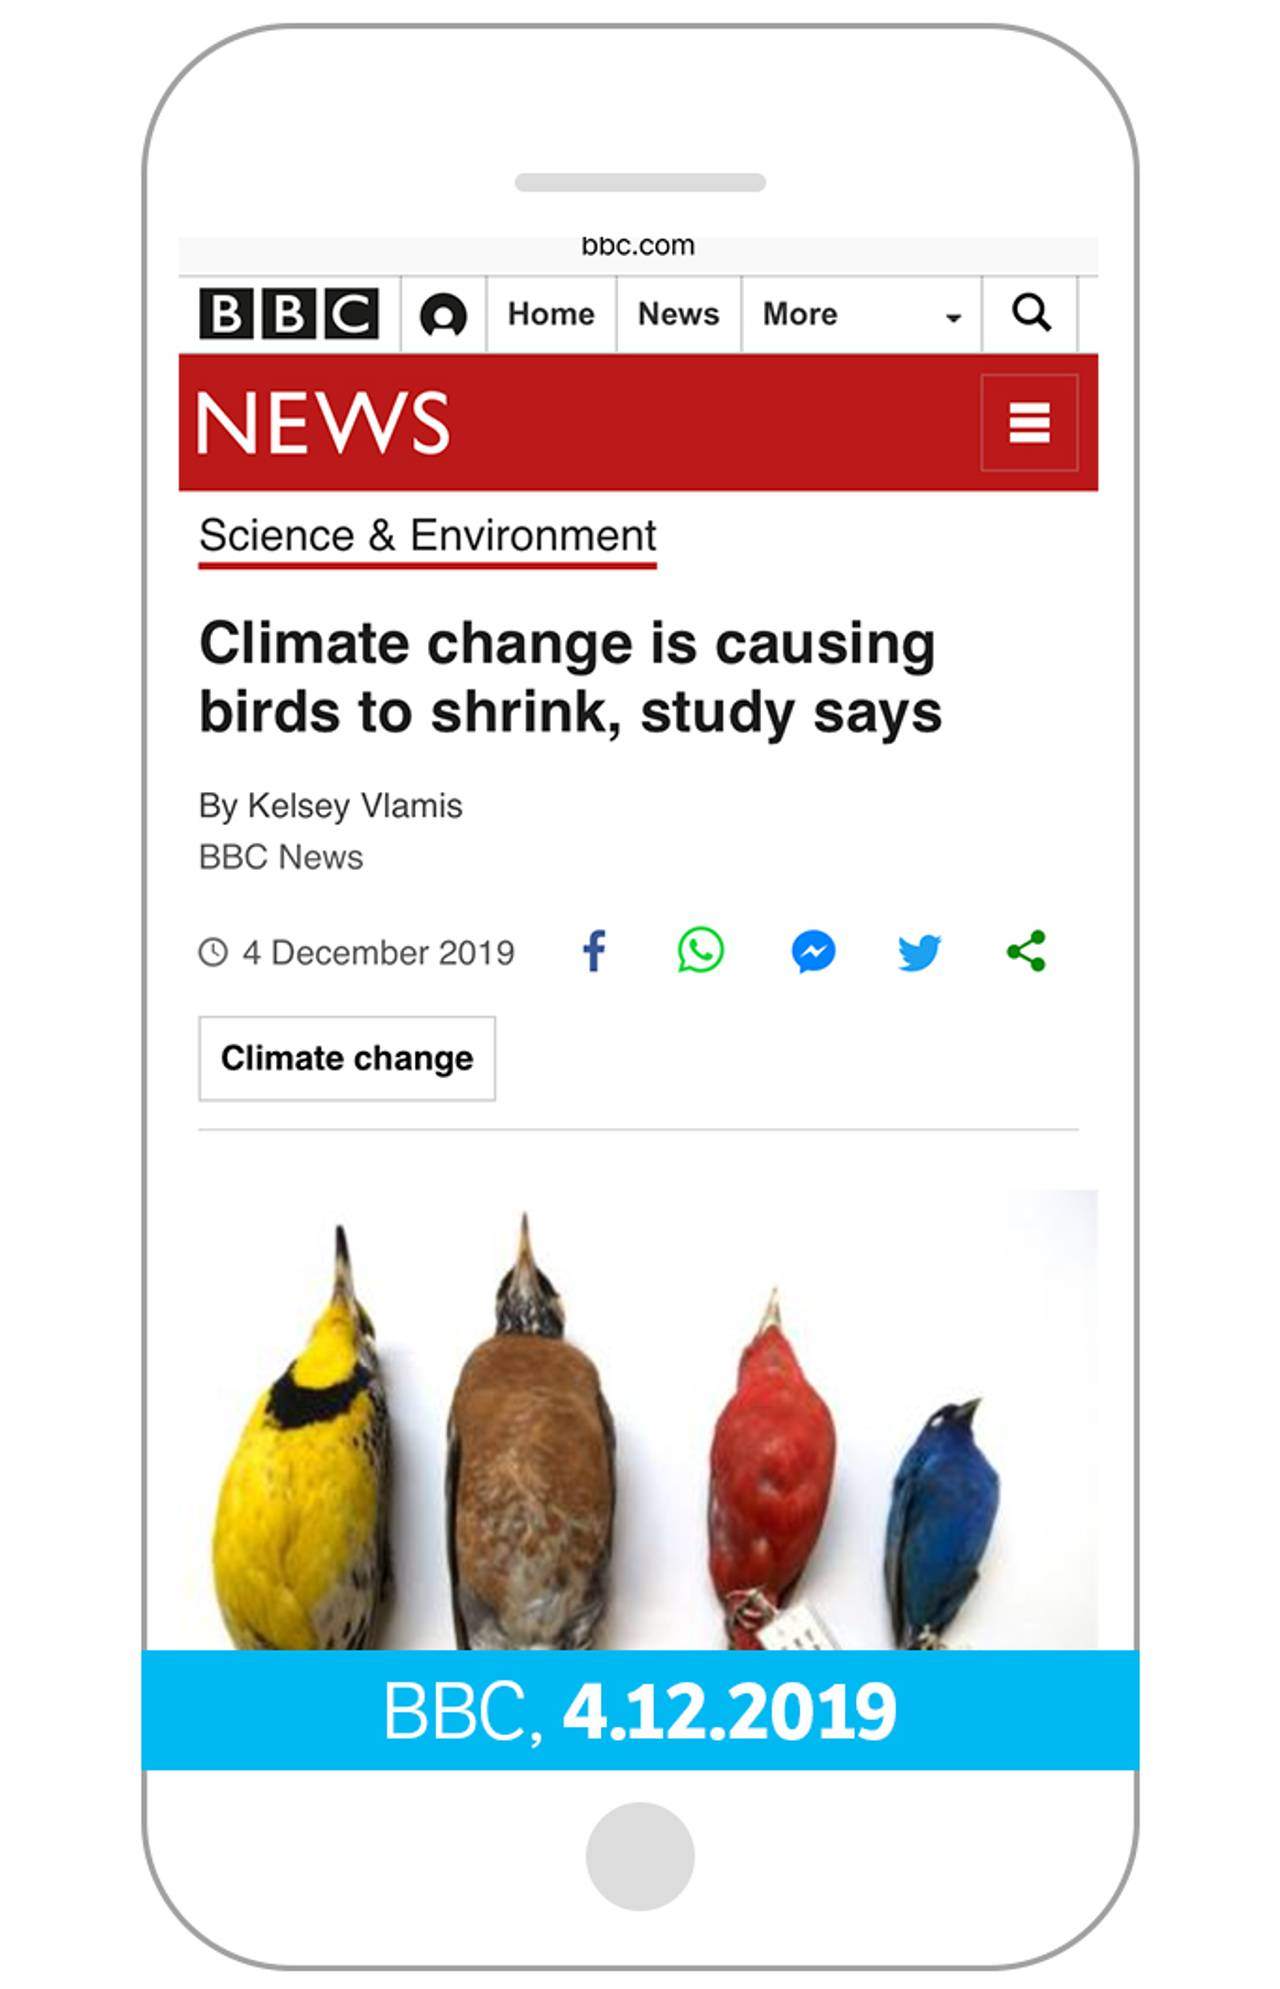 Cliamte change is causing birds to shrink